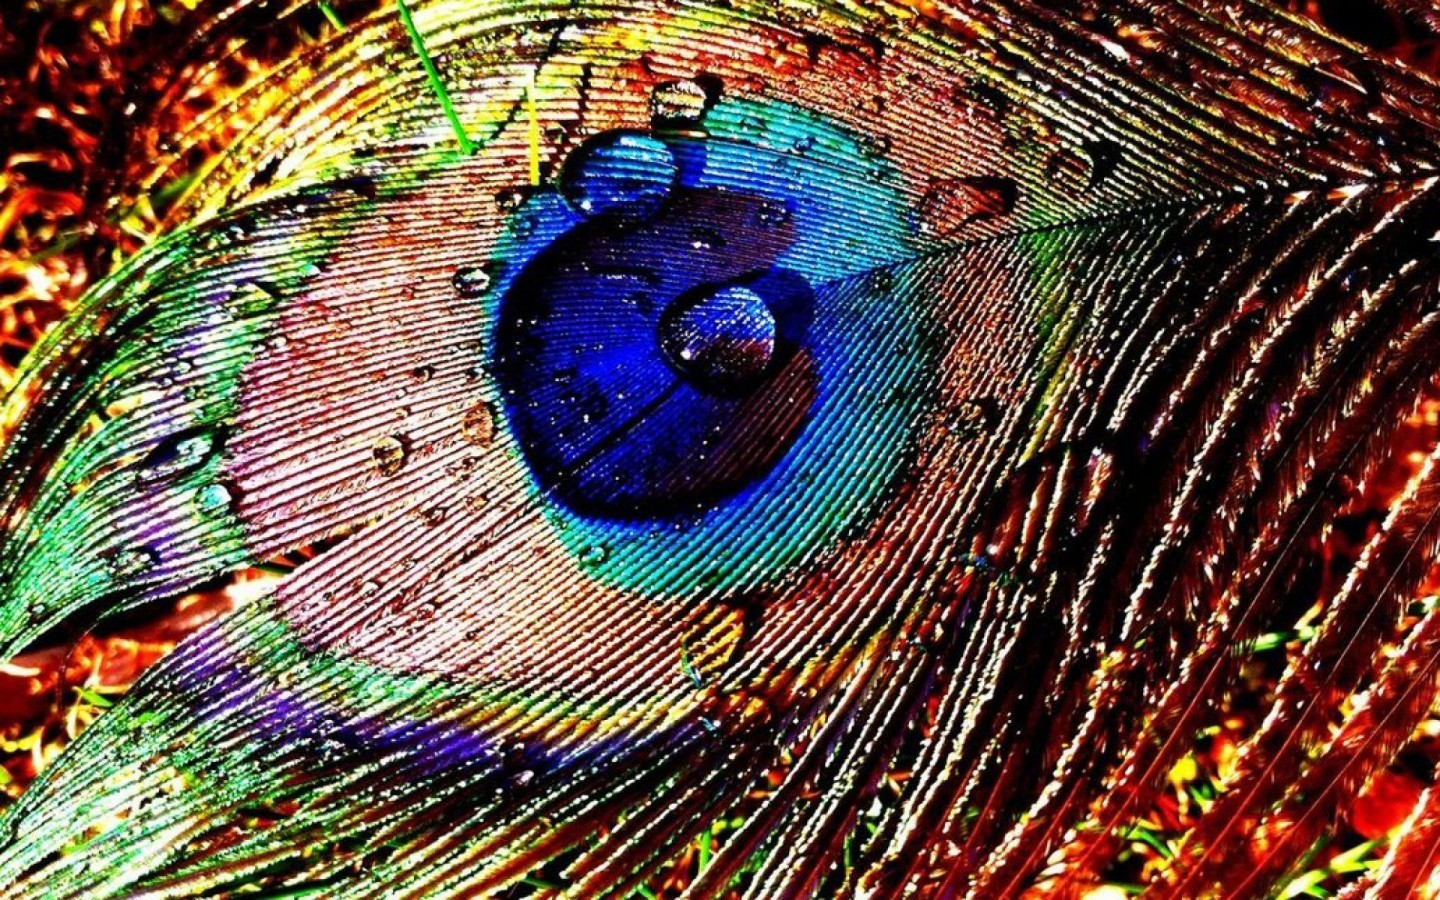 Peacock Feather wallpaper 1440x900